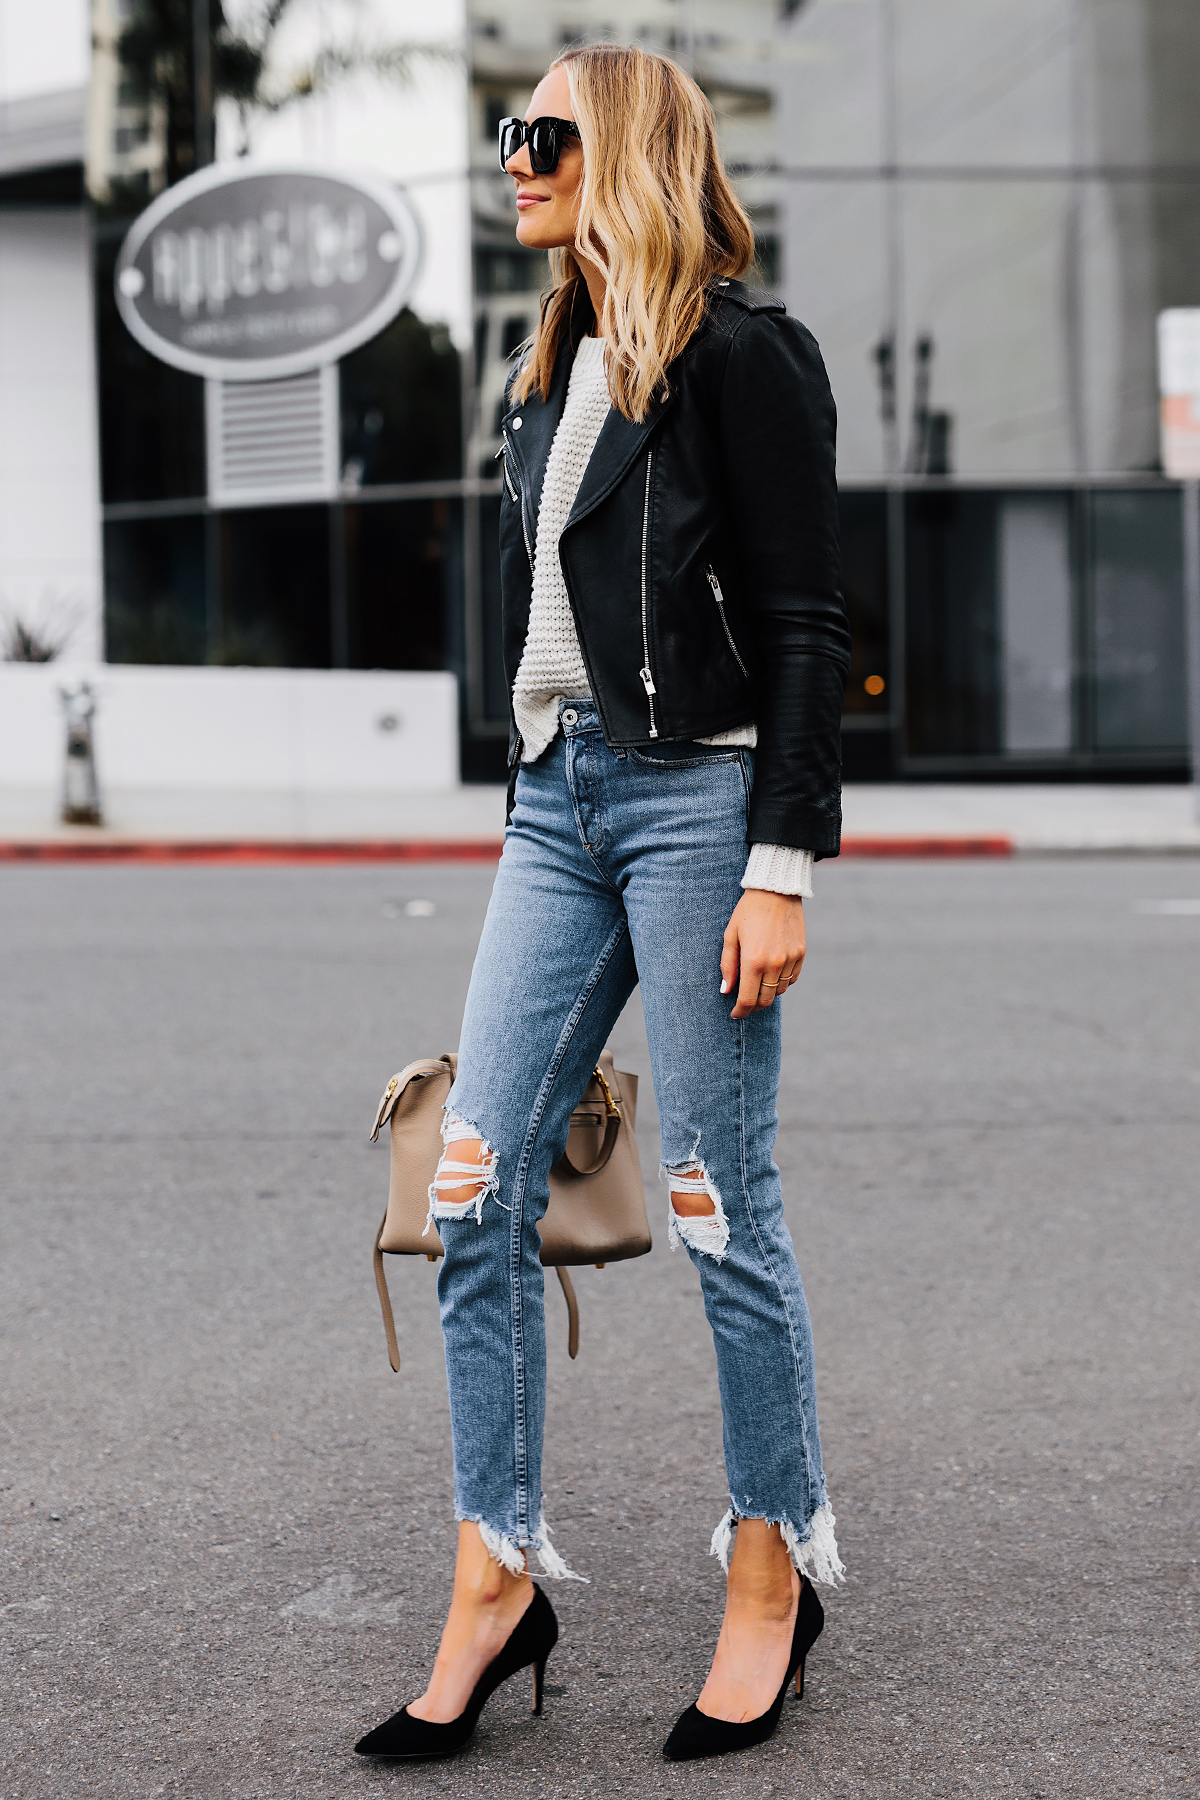 Blonde Woman Wearing Club Monaco Black Leather Jacket Ivory Chunky Sweater Paige Ripped Jeans Black Pumps Fashion Jackson San Diego Fashion Blogger Street Style